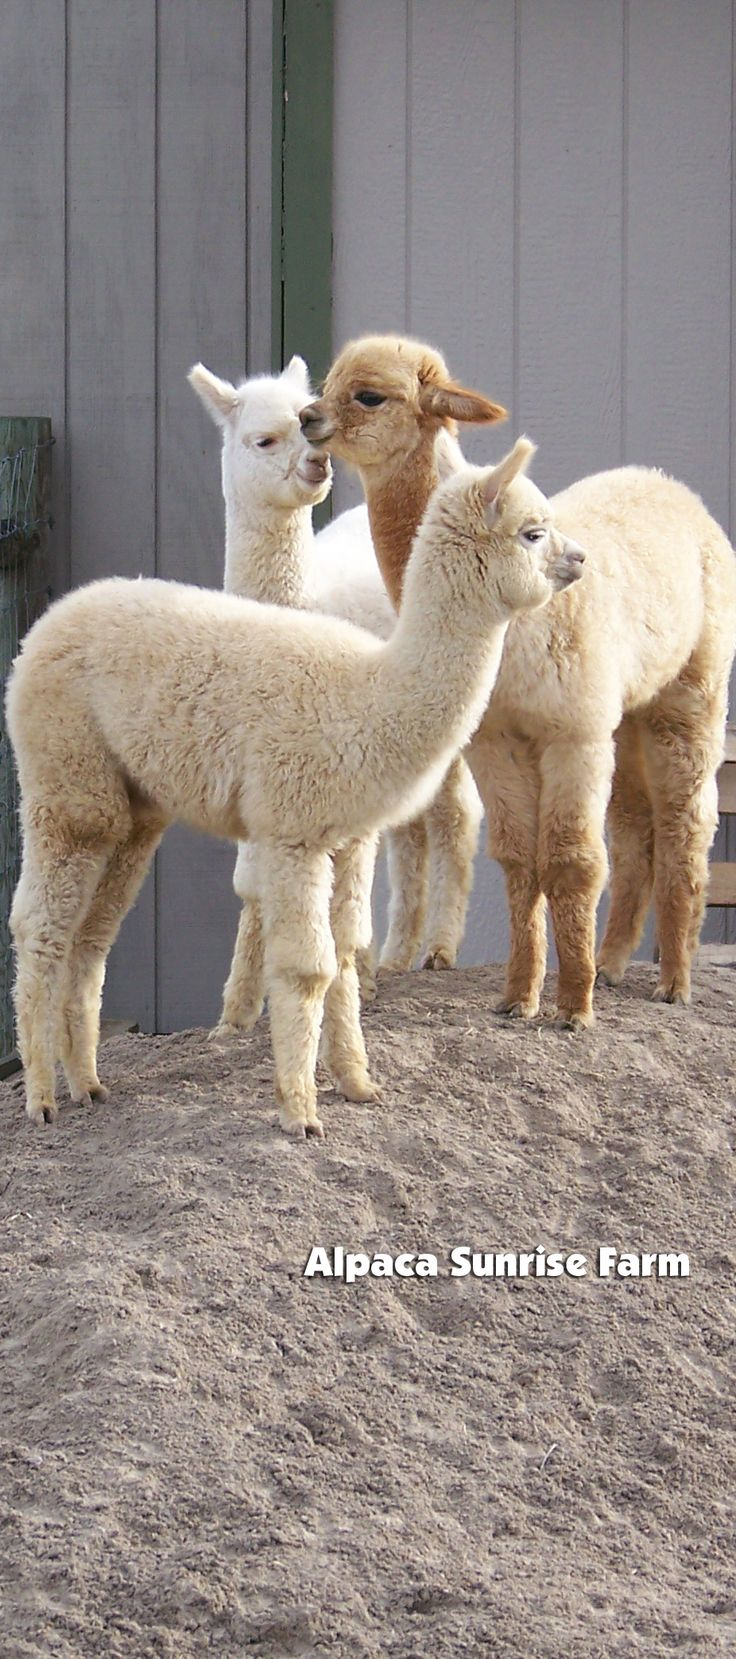 ALPACA CRIA. Alpaca Sunrise Farm is a full-service Alpaca farm since 1998 • Alpaca sales • breeding • boarding • Alpaca raw fiber, yarn, roving sales for knitters, crocheters, weavers and fiber artists. www.AlpacaSunrise... #alpaca #alpacas